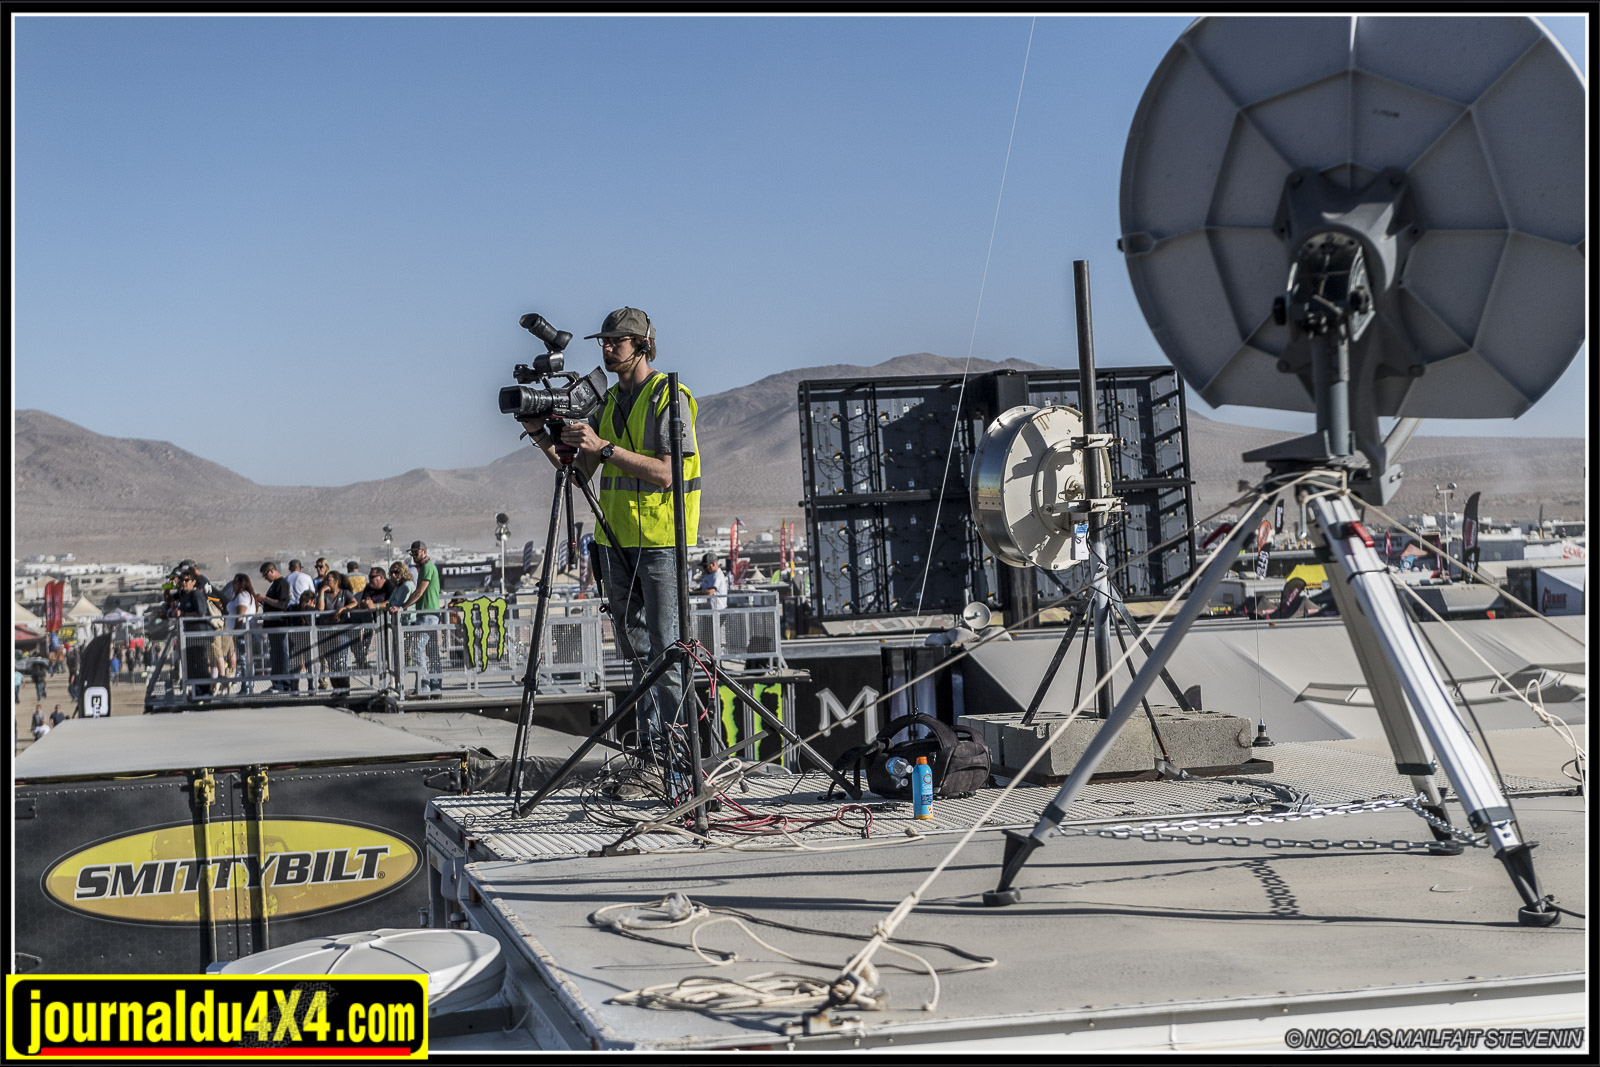 Les coulisses du Live Vidéo au King Of the Hammers